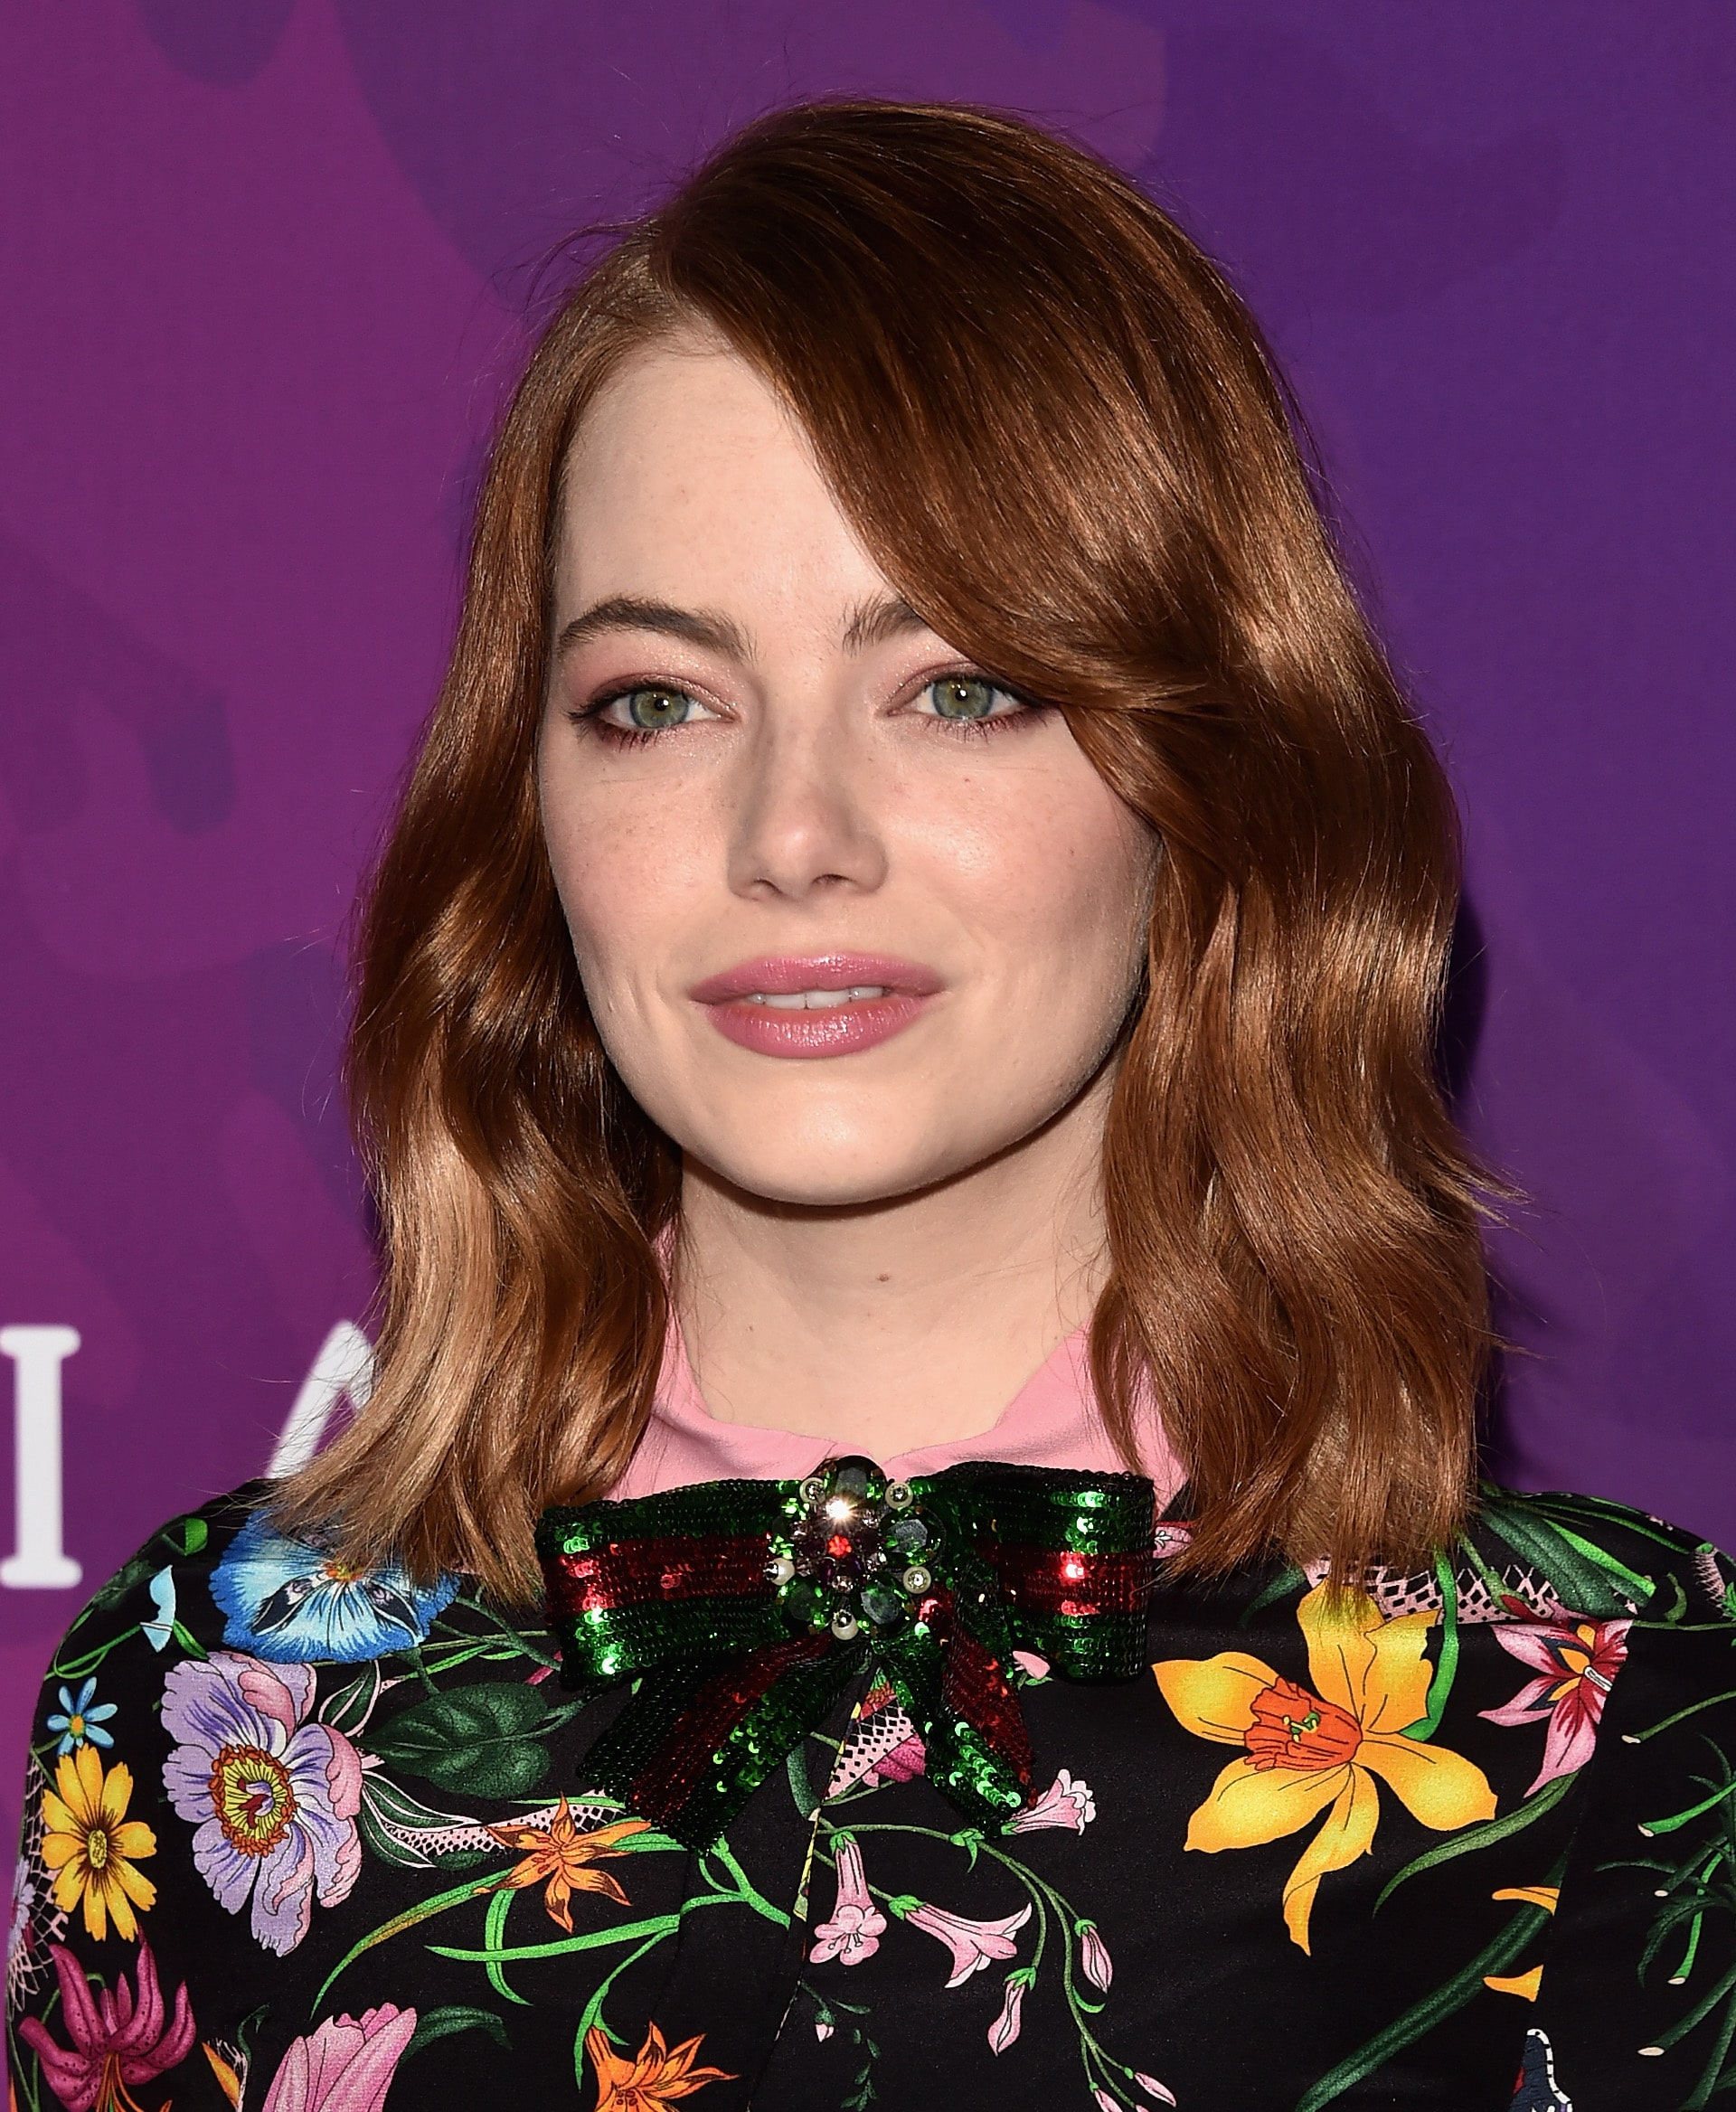 best bob haircuts: All Things Hair - IMAGE - Emma Stone